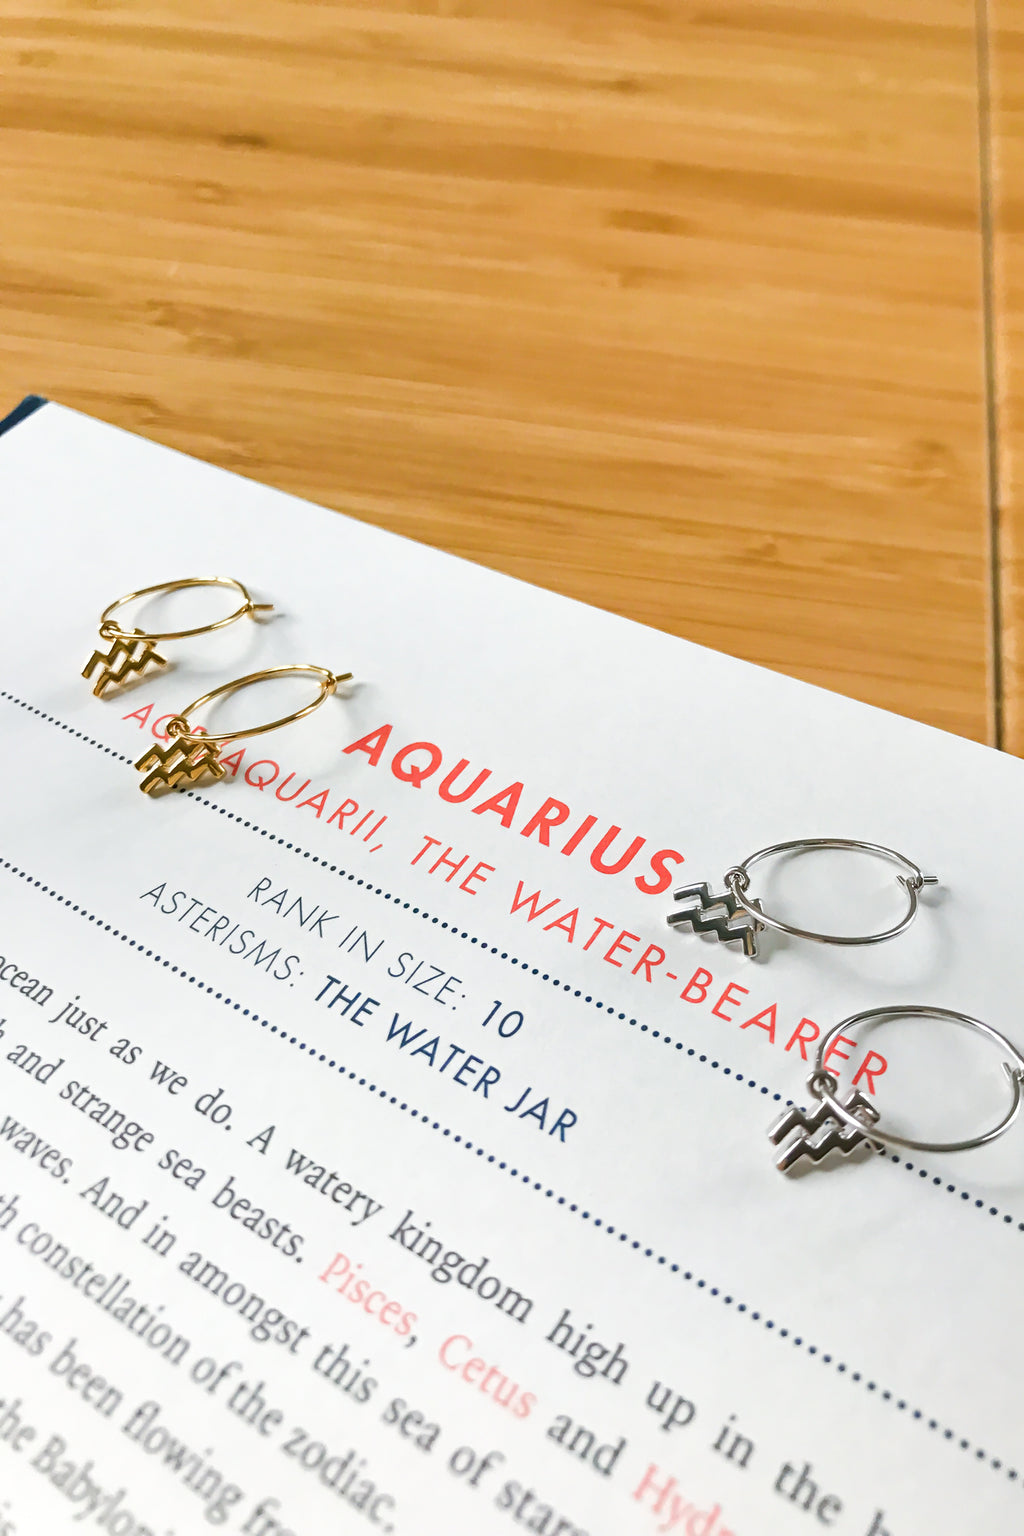 Aquarius mini hoop earrings